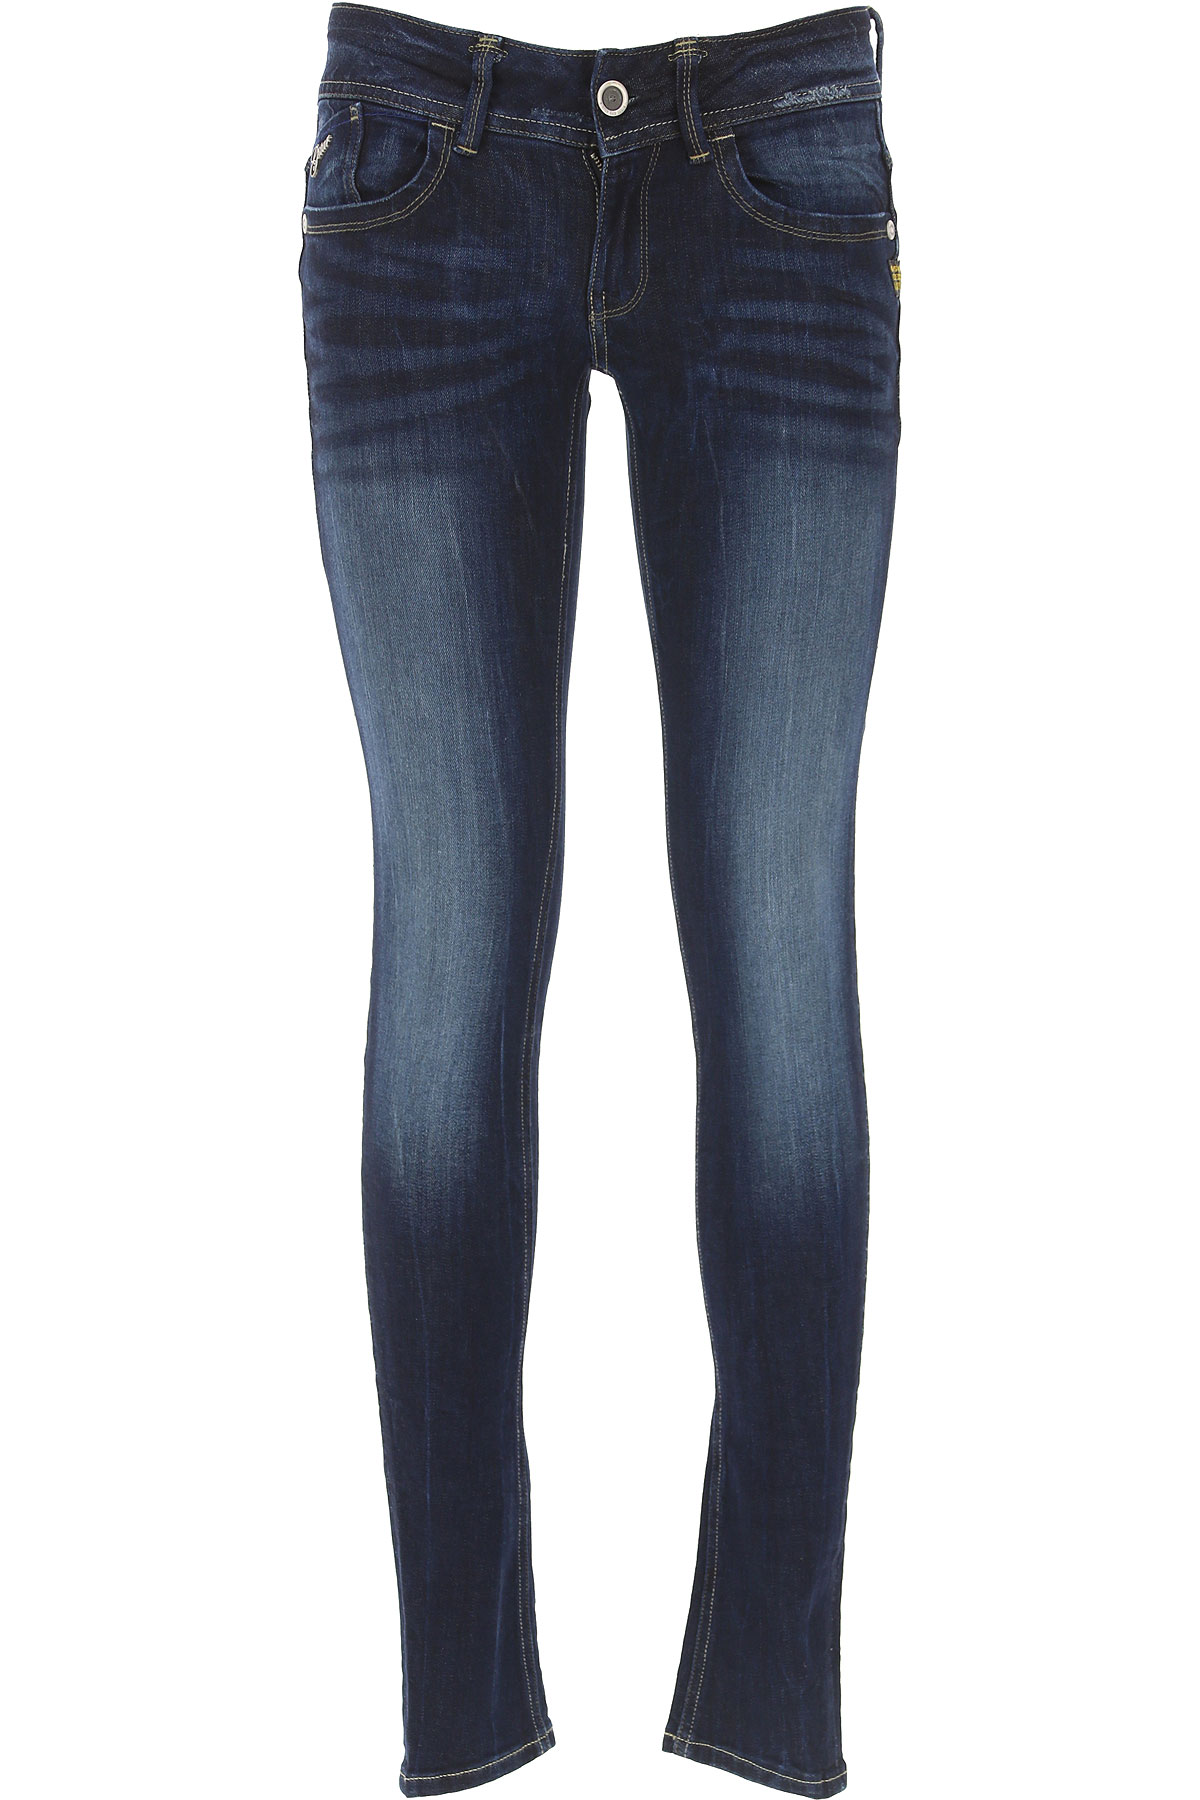 G-Star Jeans On Sale in Outlet, Denim, Cotton, 2017, 24 25